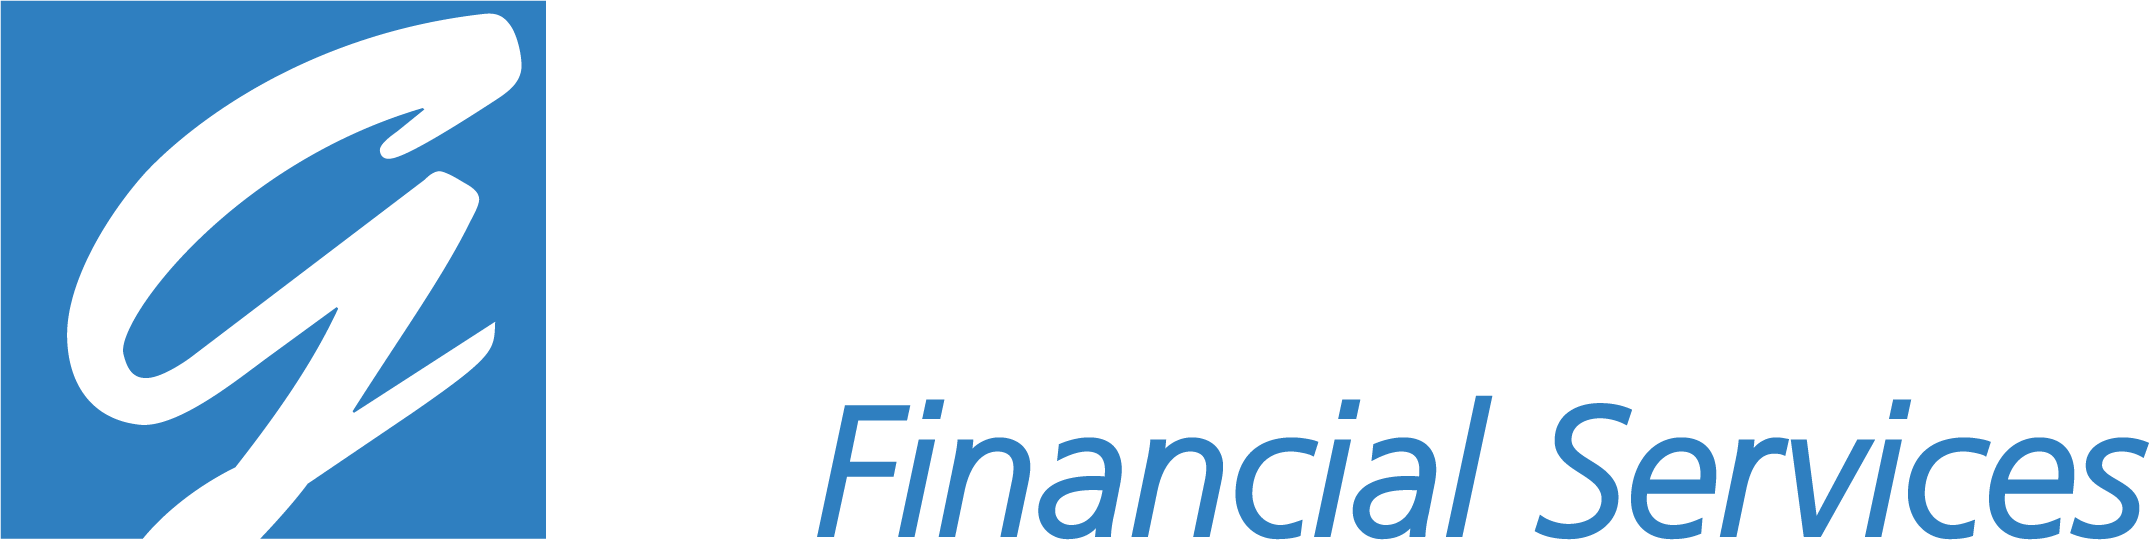 GP Financial Services